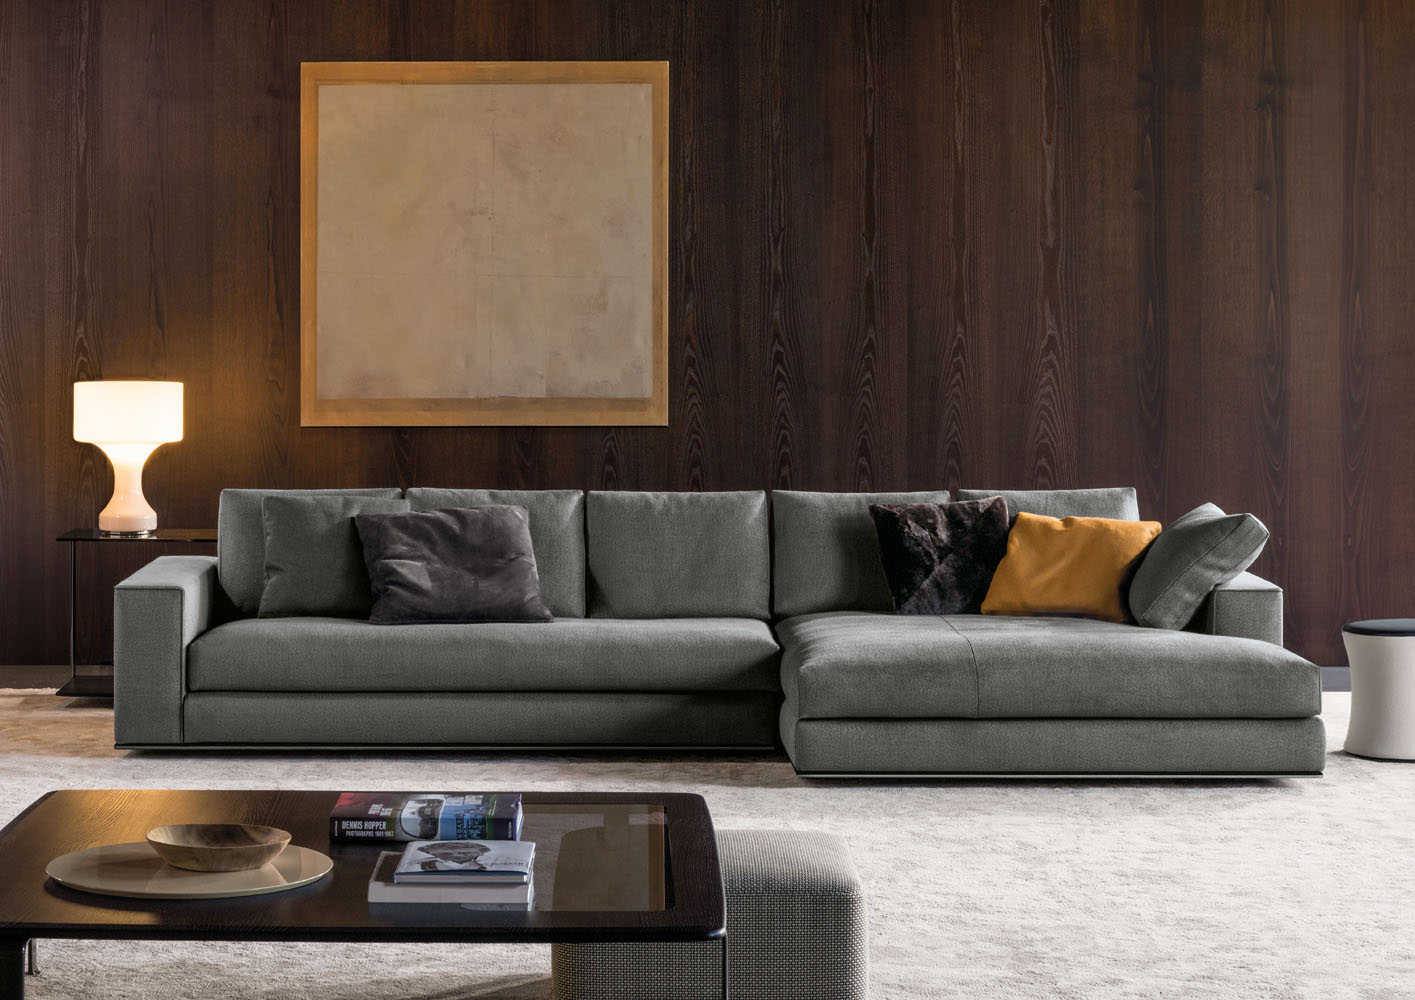 Hamilton Sofa Designed By Rodolfo Dordoni Minotti Orange Skin